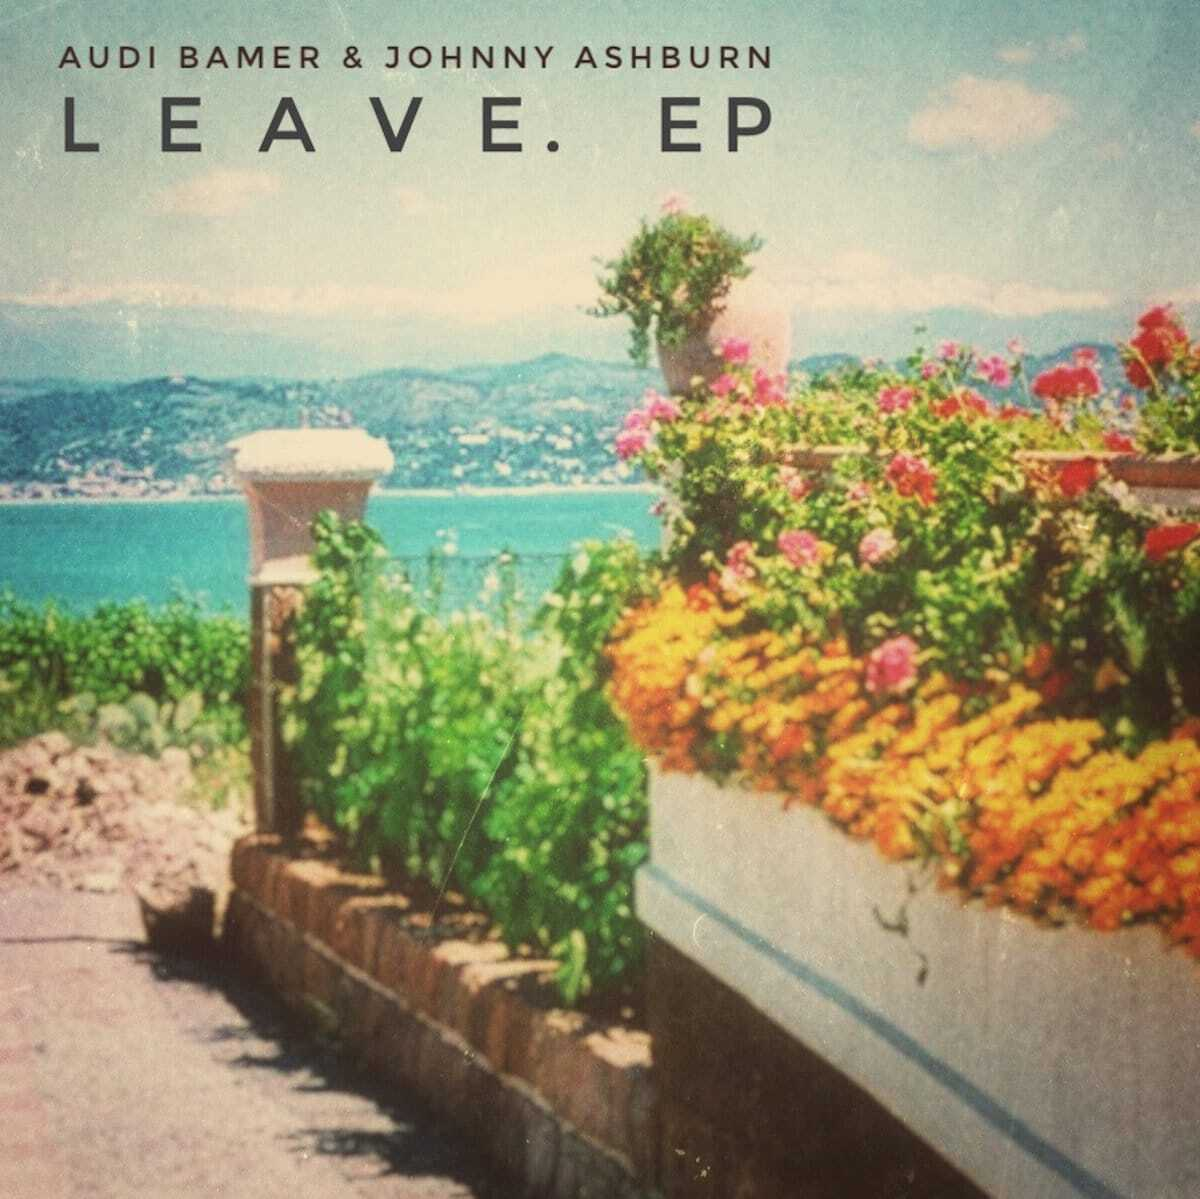 Audi Bamer x Johnny Ashburn - Leave EP